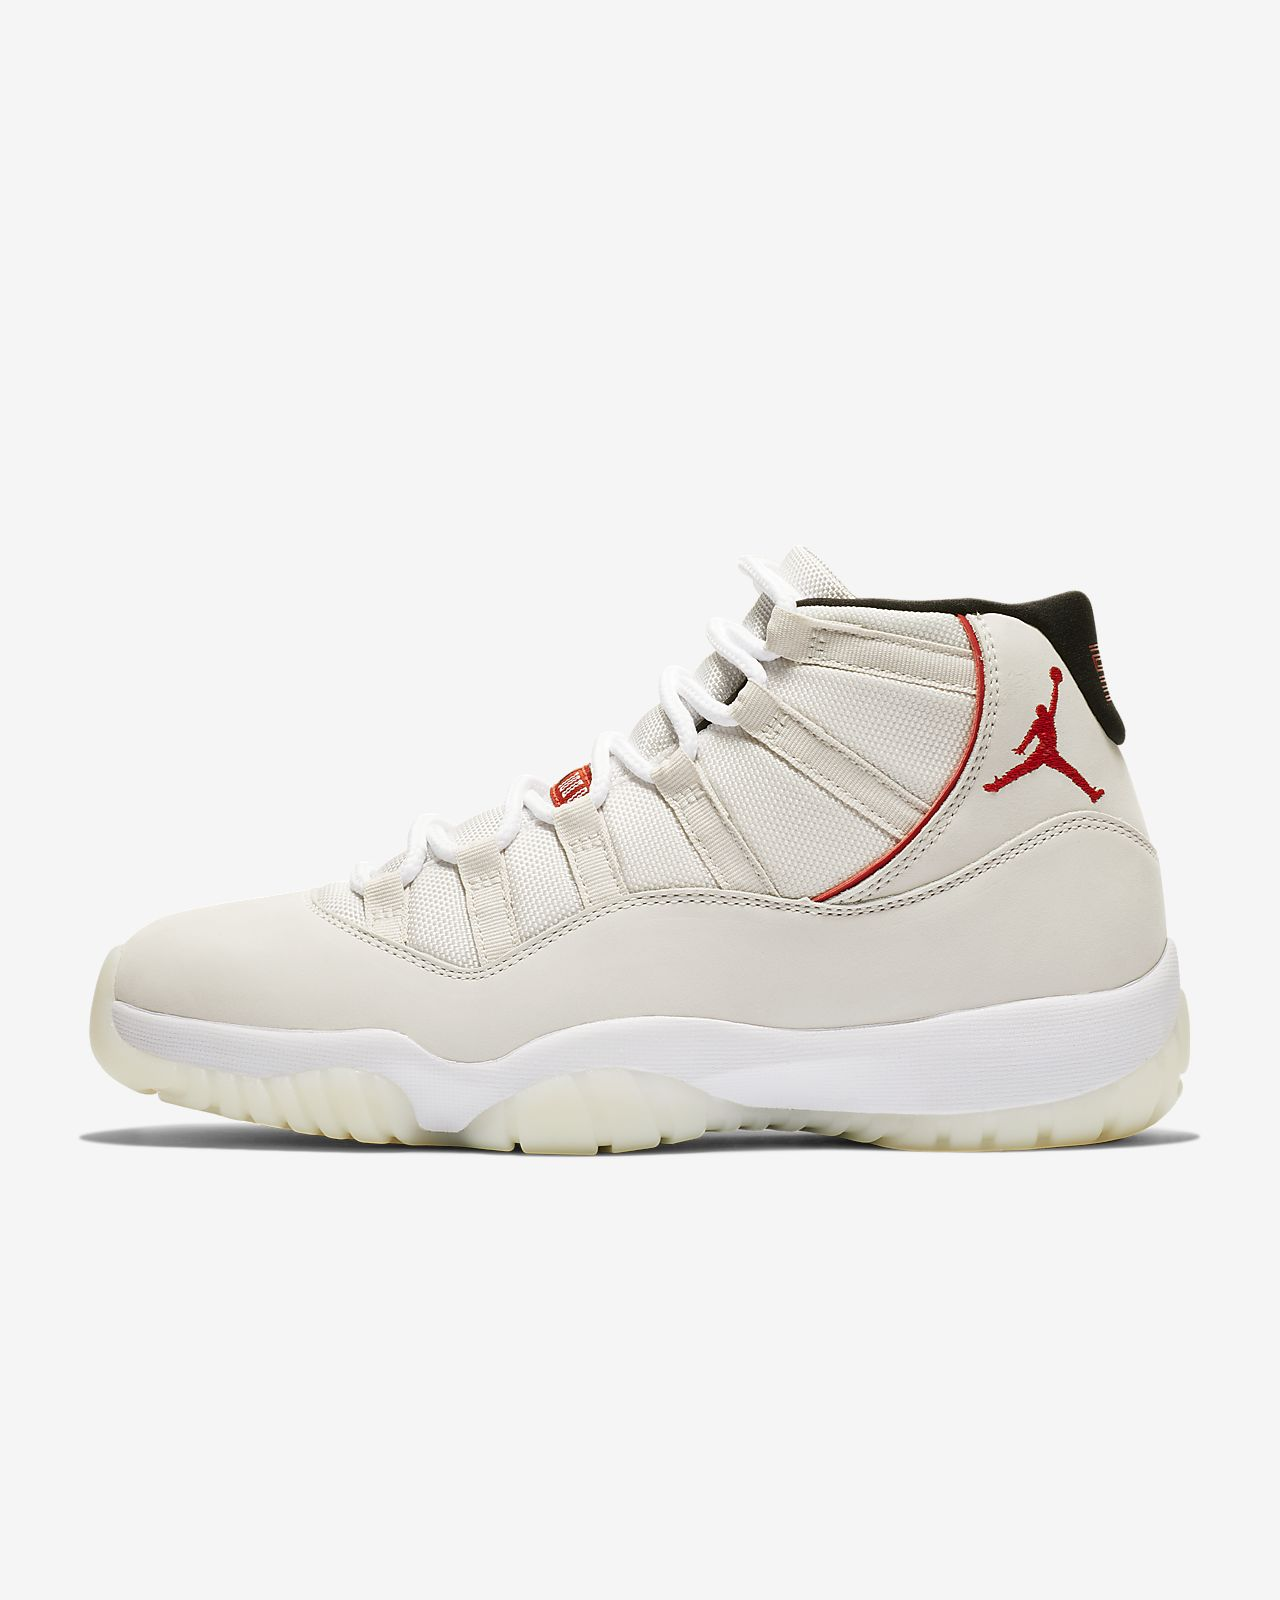 cheap for discount 9966b 47264 Air Jordan 11 Retro